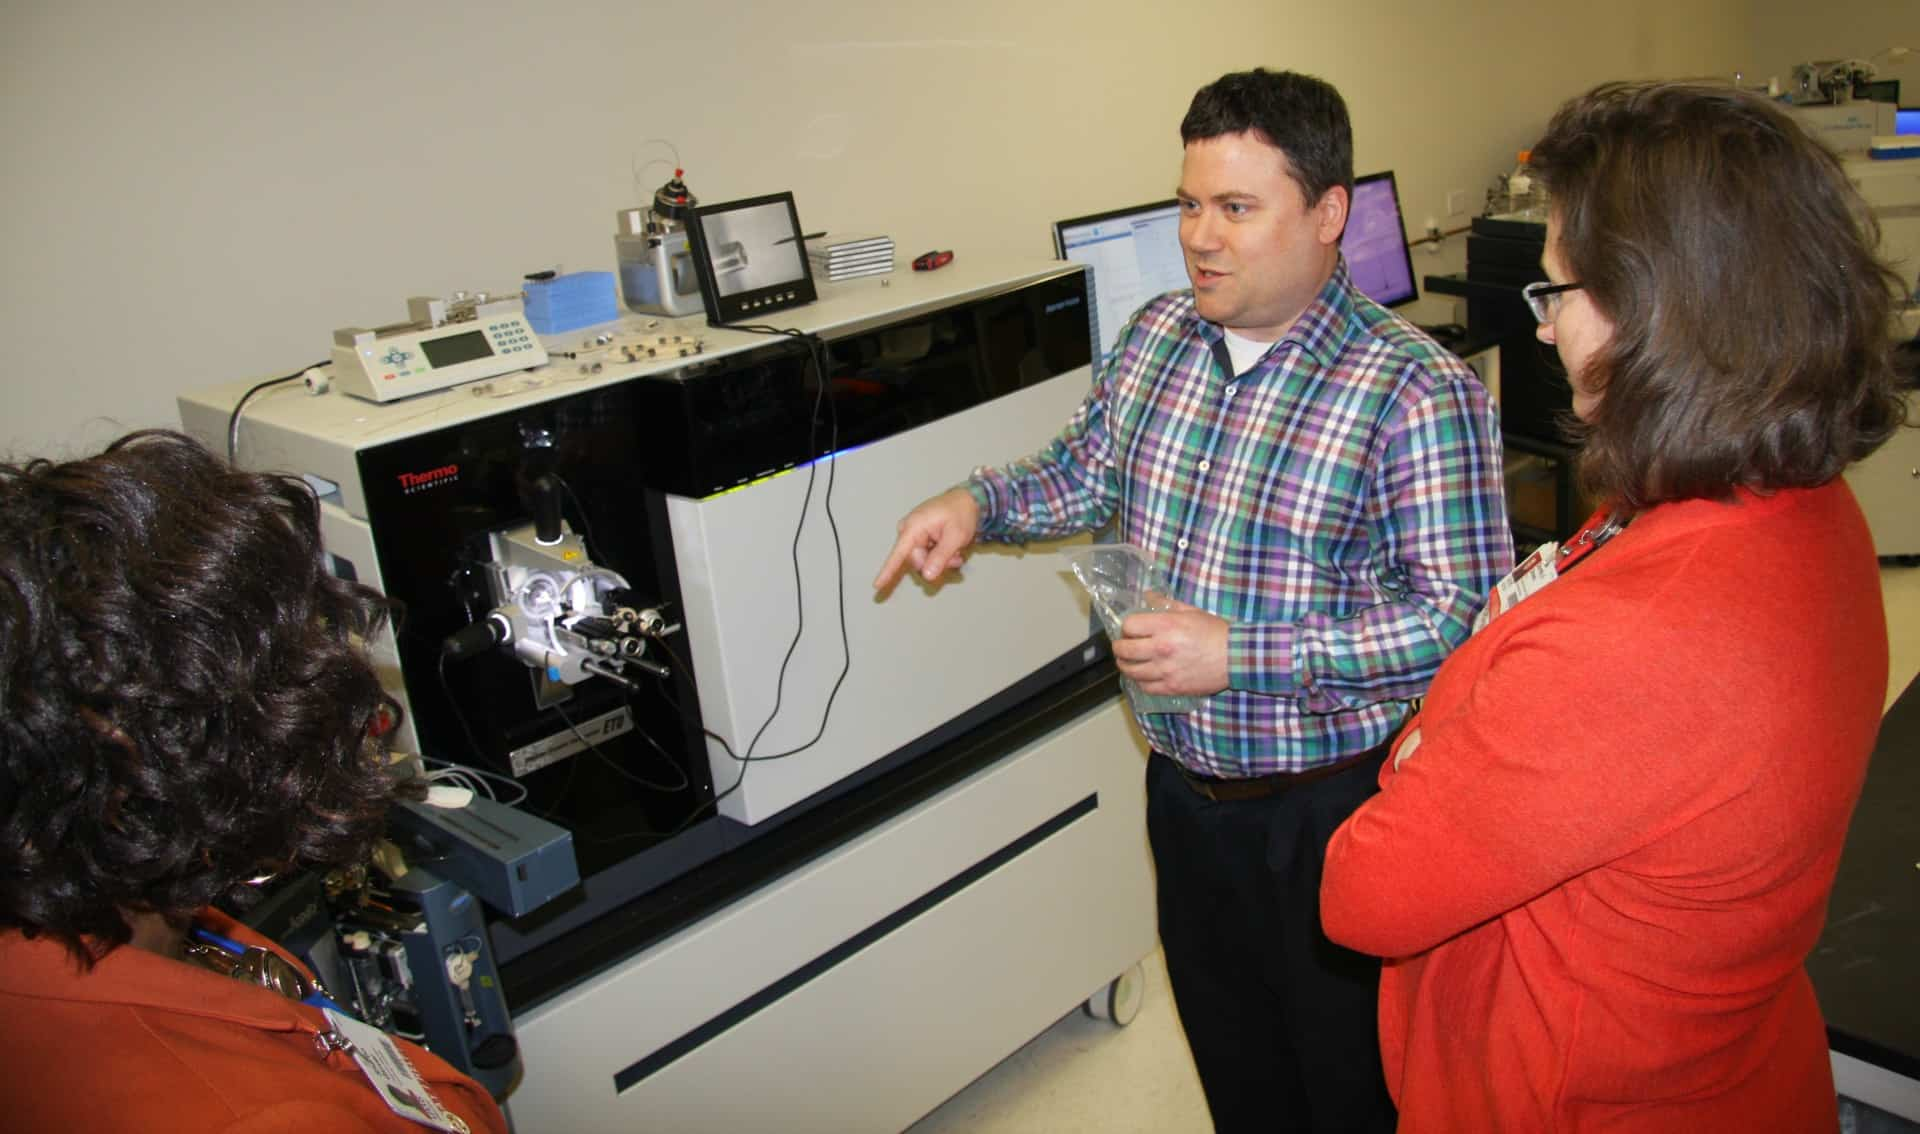 Professor pointing to features of mass spec